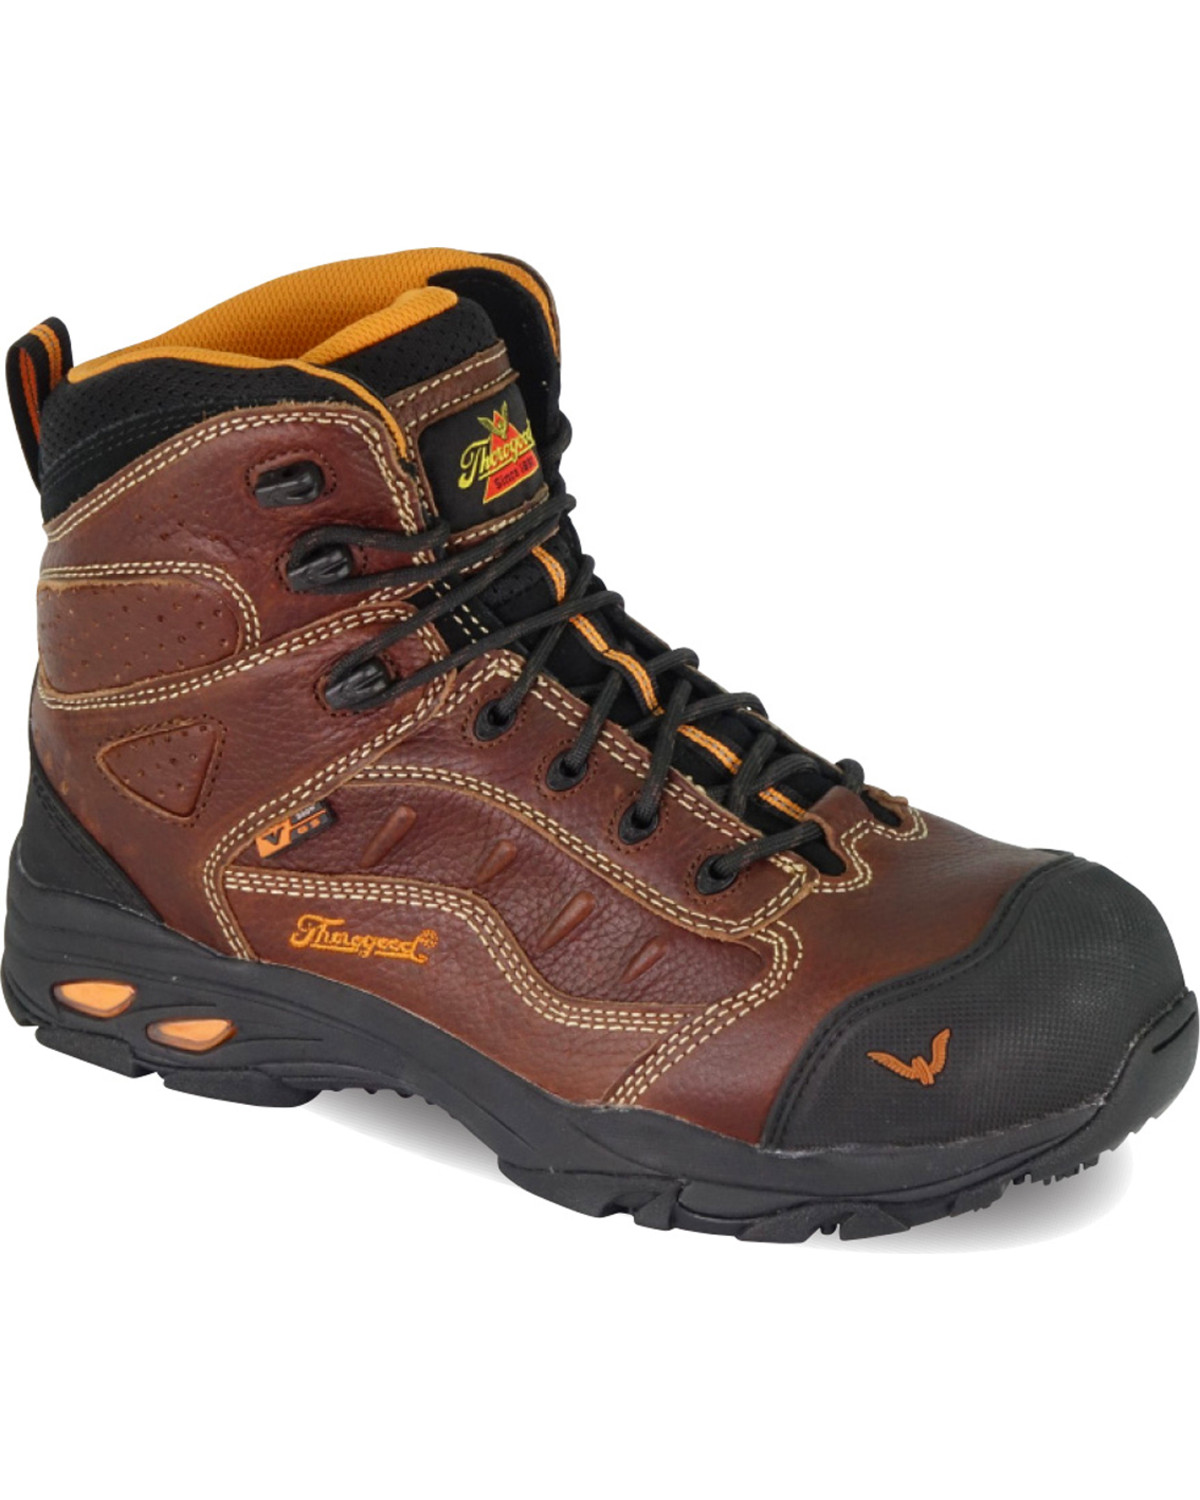 54e66694133 Thorogood Men s VGS-300 ASR SD Sport Hiker Boots - Composite Safety ...